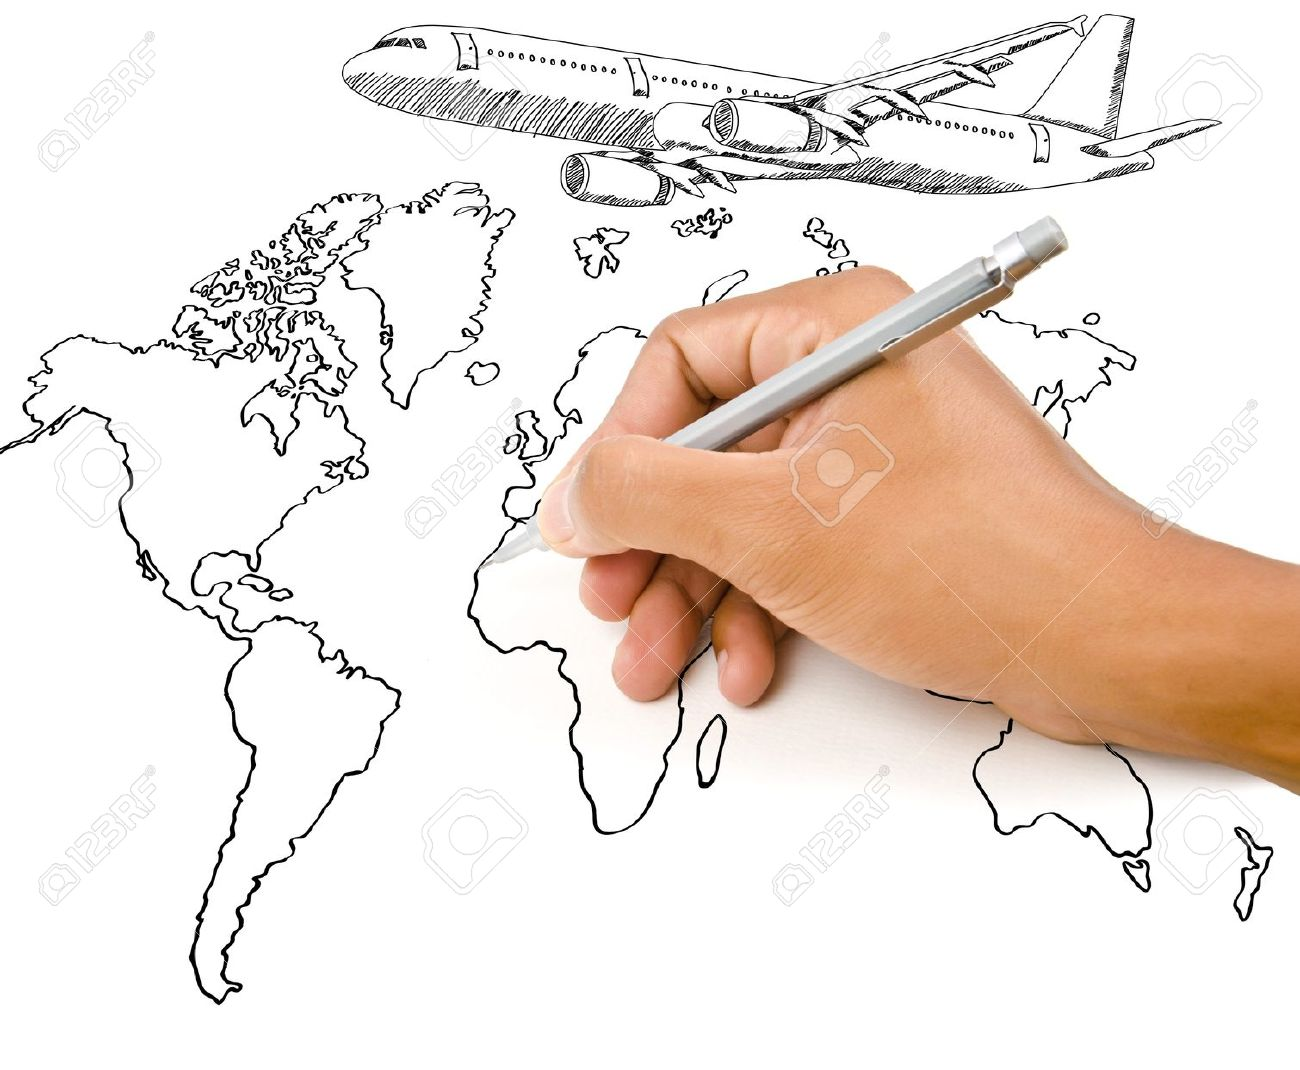 Hand drawing world map globe with airplane for travel around the hand drawing world map globe with airplane for travel around the world foto de archivo gumiabroncs Images